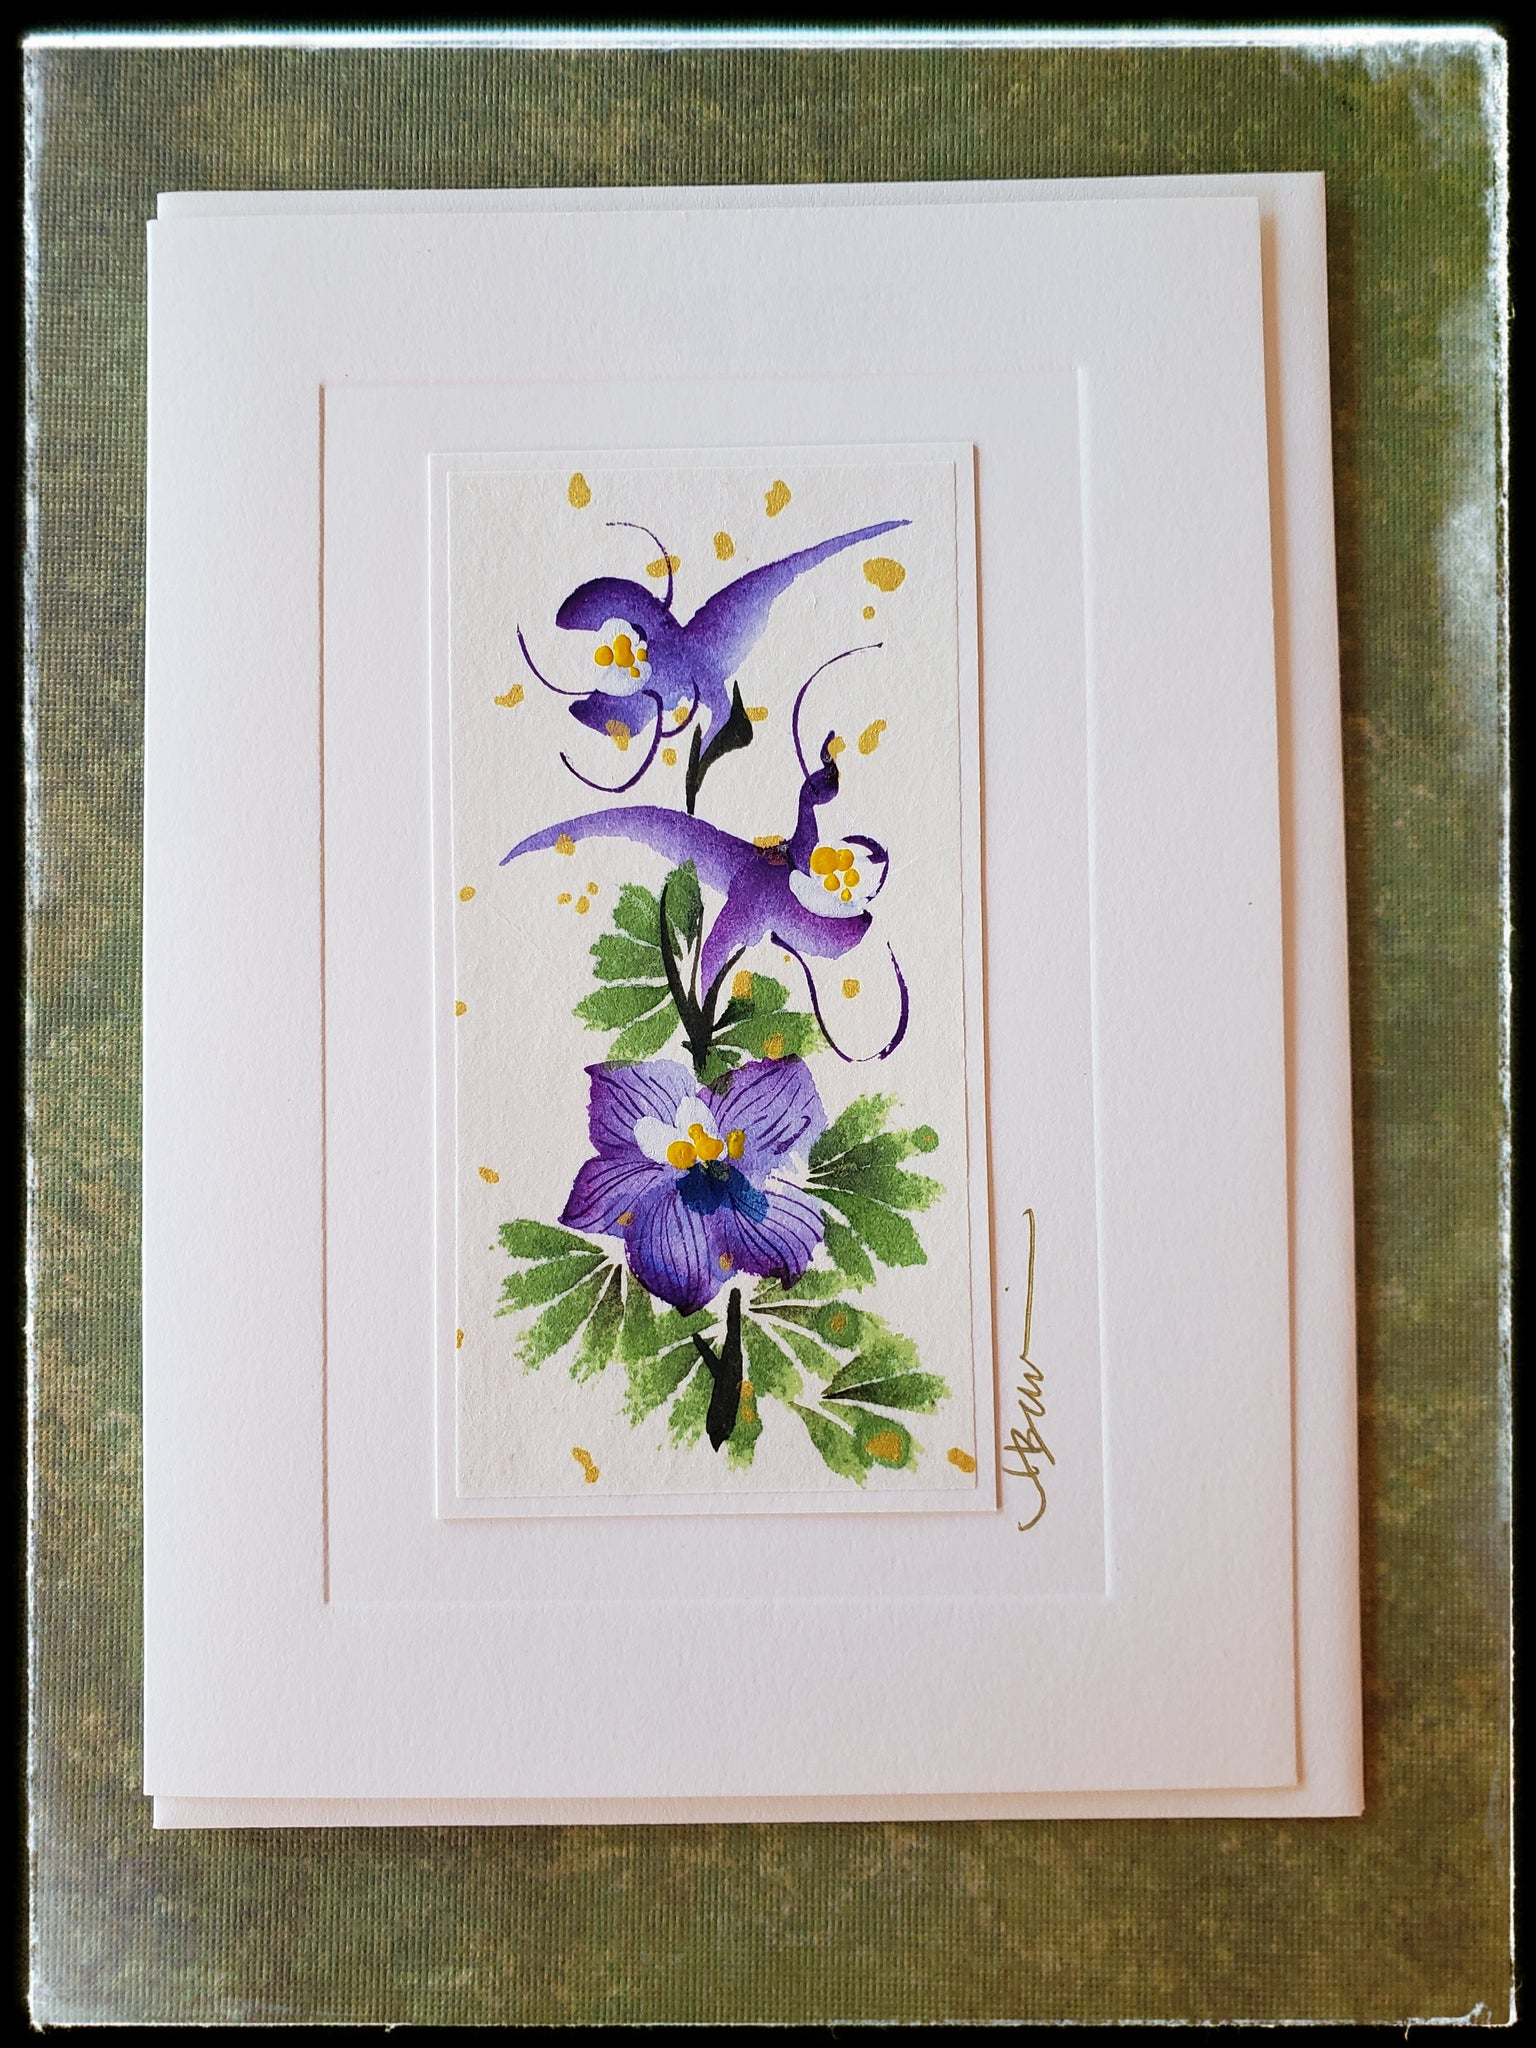 "July Larkspur Flower Hand Painted Card Lively and spirited, the Larkspur symbolizes laughter, and open heart and ardent attachment.   Gold accents  Individually hand-painted on rice paper  Hand-painted images will vary  BLANK INSIDE  5.5"" x 7.5"" with envelope ADA The Gilded Page Santa Fe"